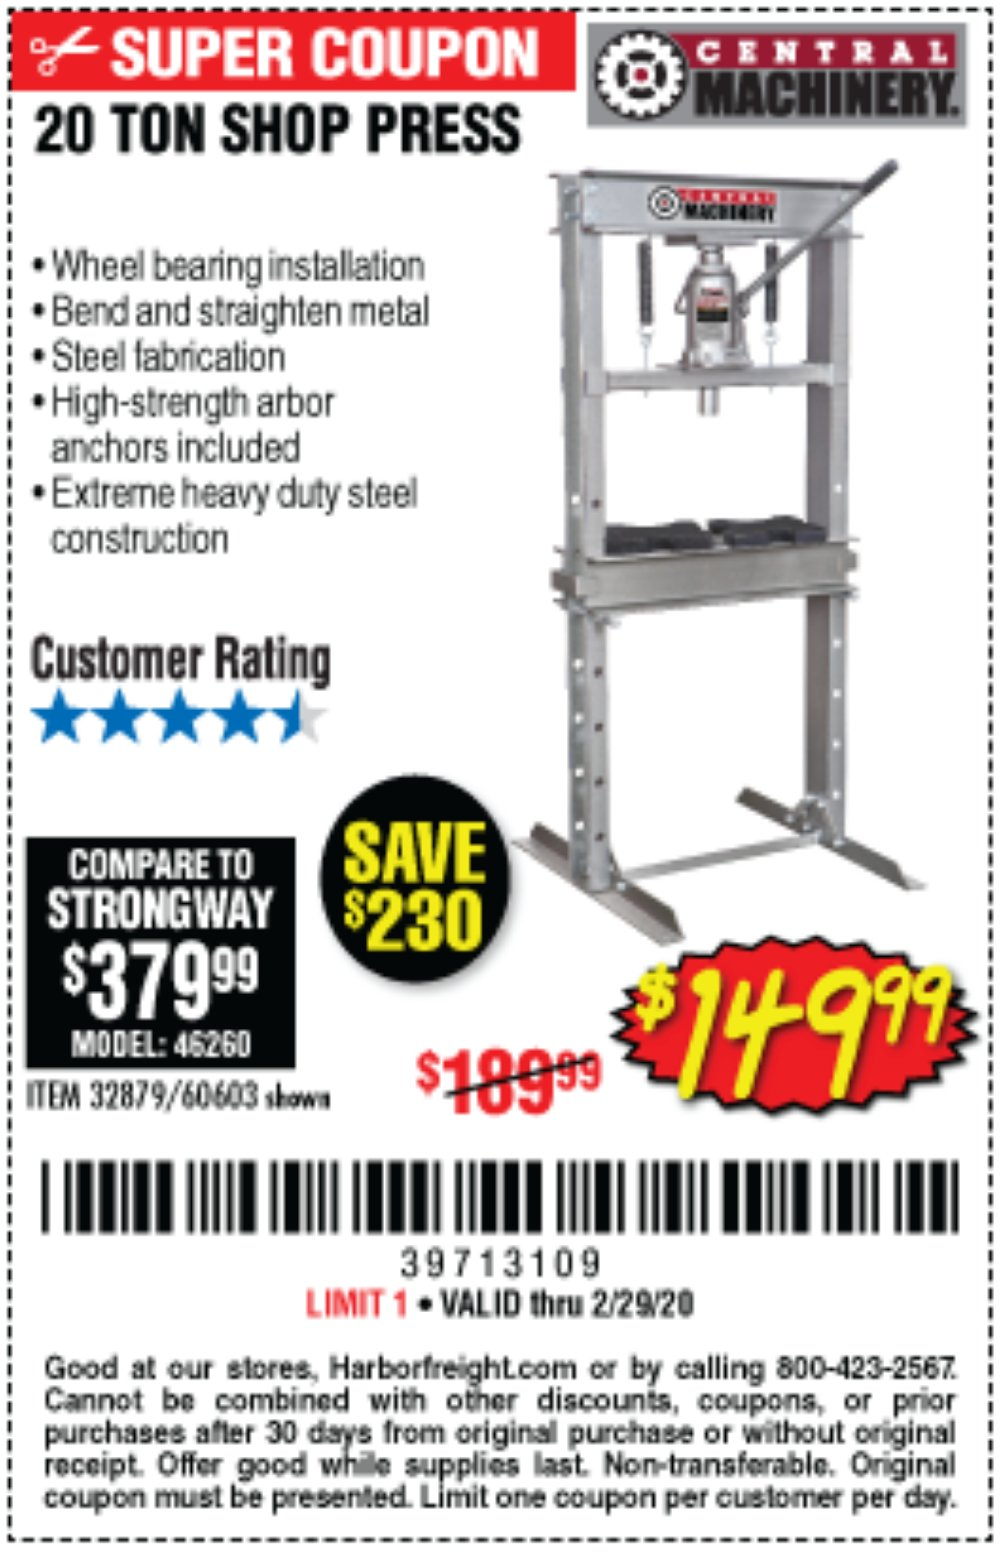 Harbor Freight Coupon, HF Coupons - 20 Ton Shop Press